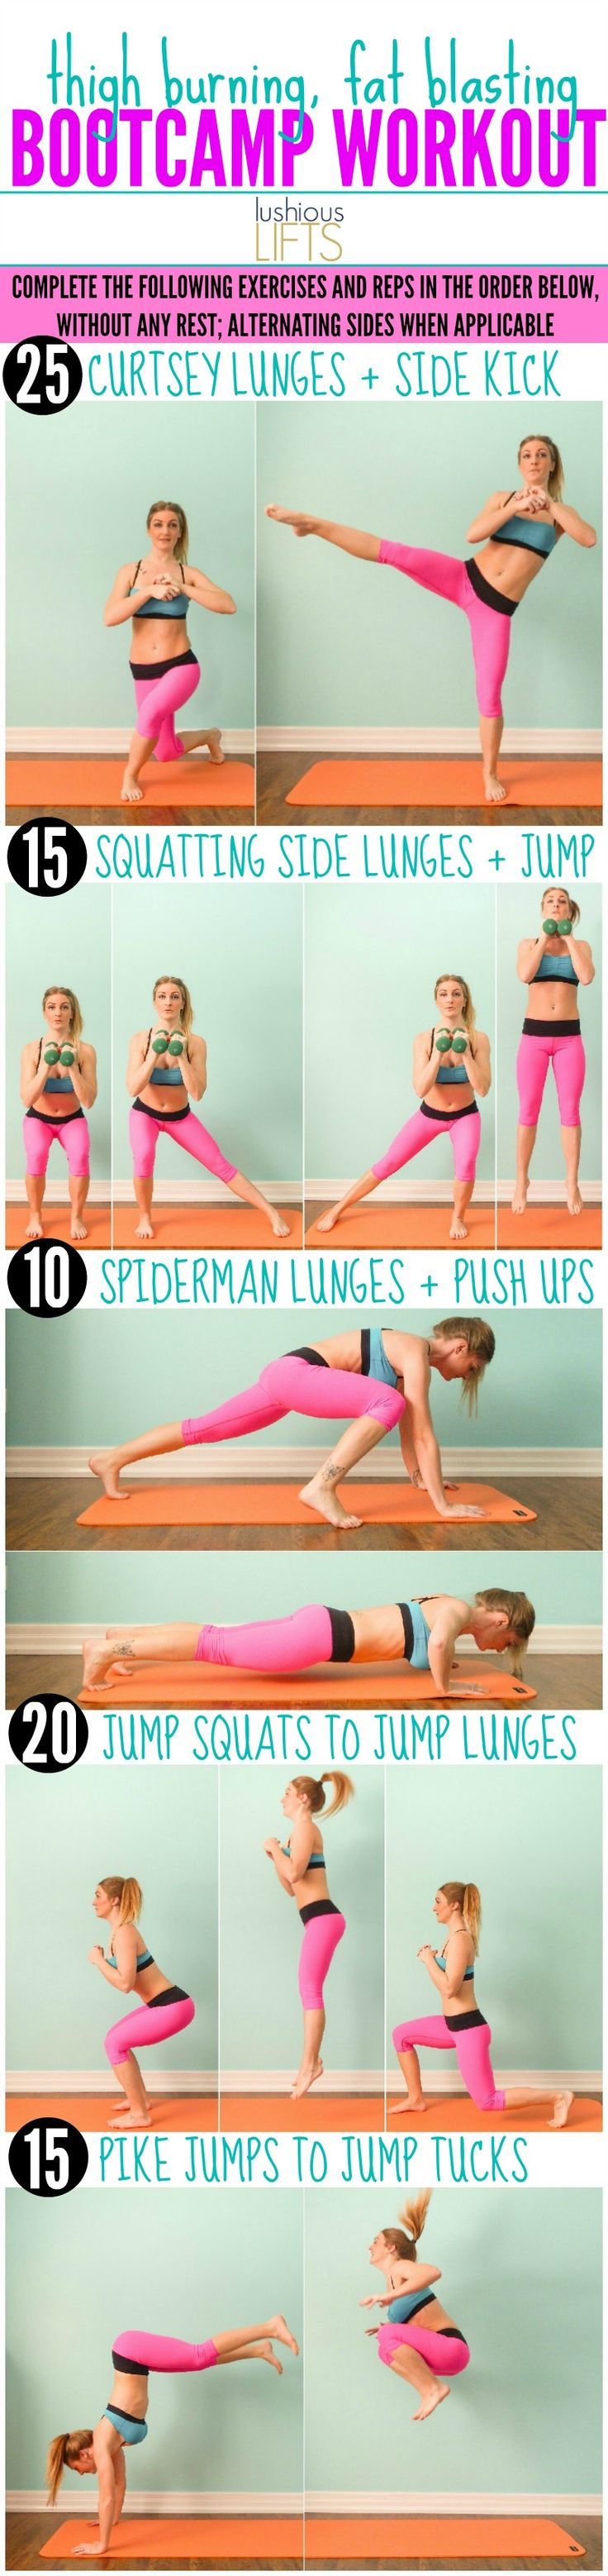 a killer workout for lean thighs {thigh burning, fat blasting, bootcamp workout}